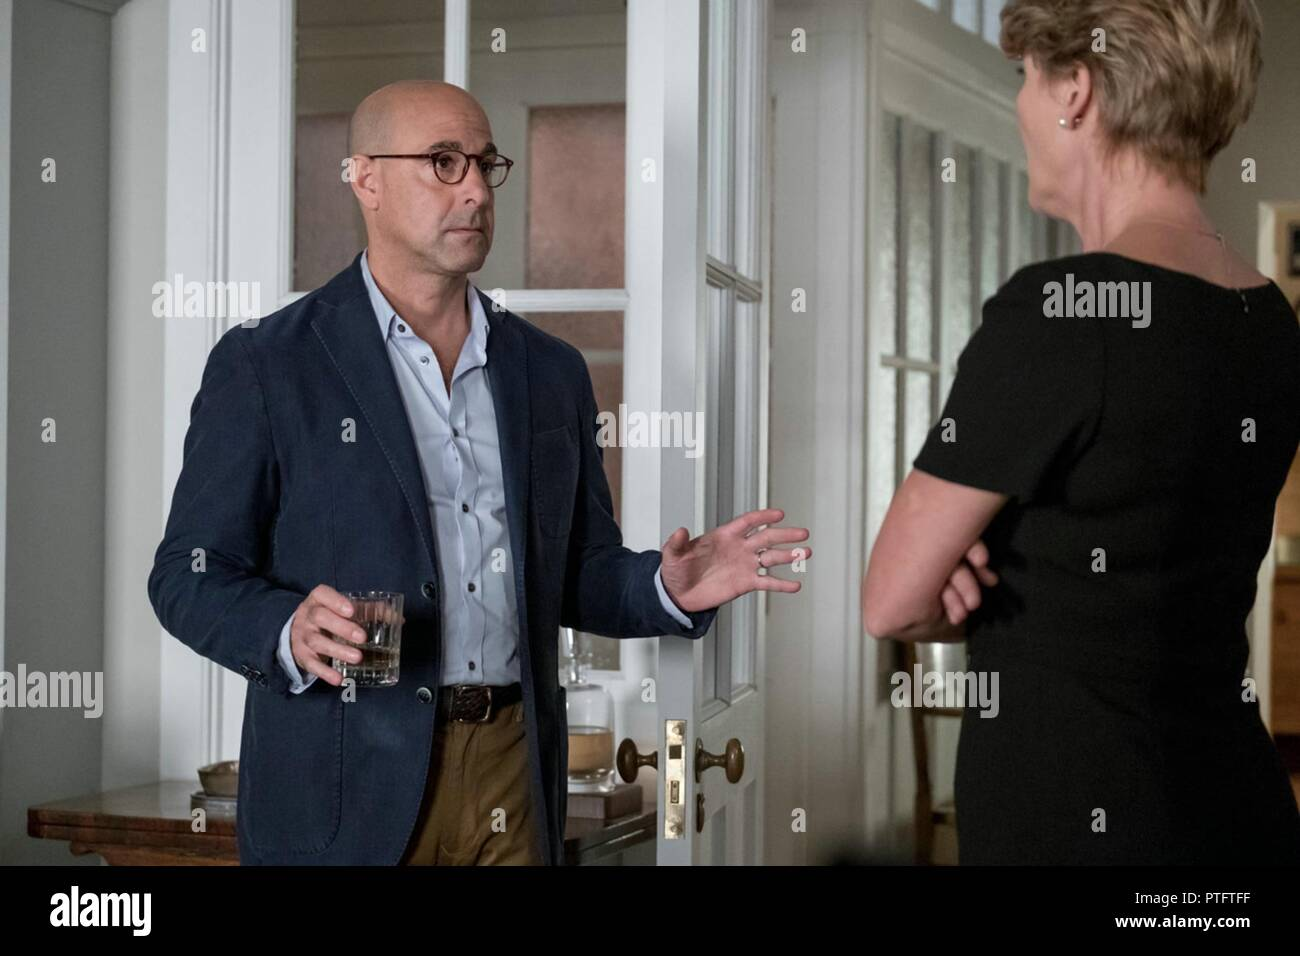 THE CHILDREN ACT (2017)  STANLEY TUCCI  EMMA THOMPSON  RICHARD EYRE (DIR)  TOLEDO/MOVIESTORE COLLECTION LTD - Stock Image